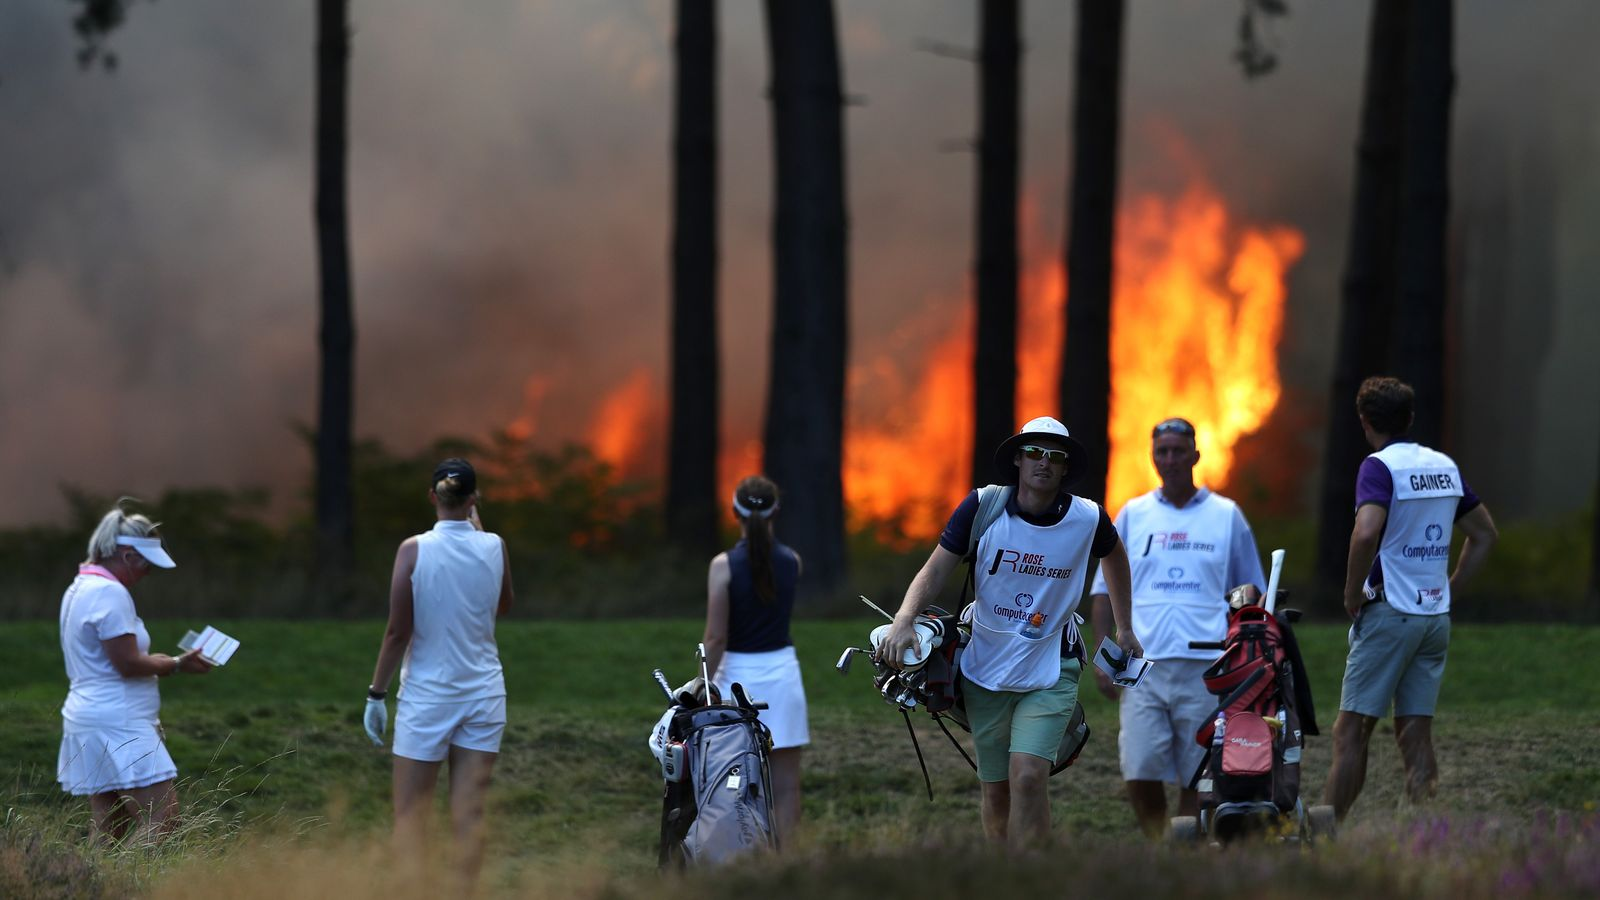 Wentworth Fire: Rose Ladies Series Grand Final abandoned due to blaze - Sky Sports